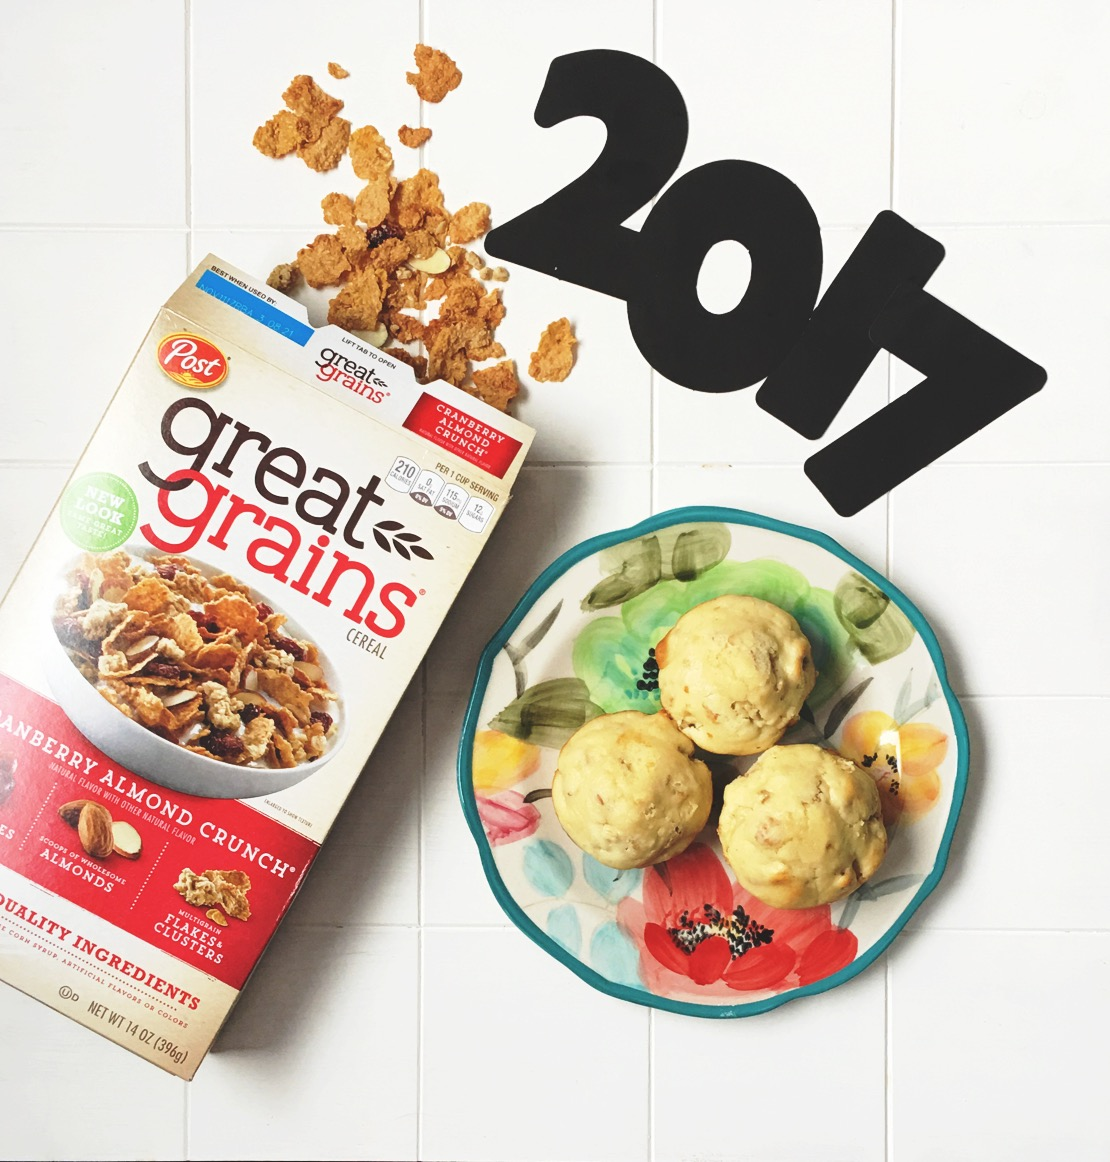 Start Your Day With Great Grains® Cereal